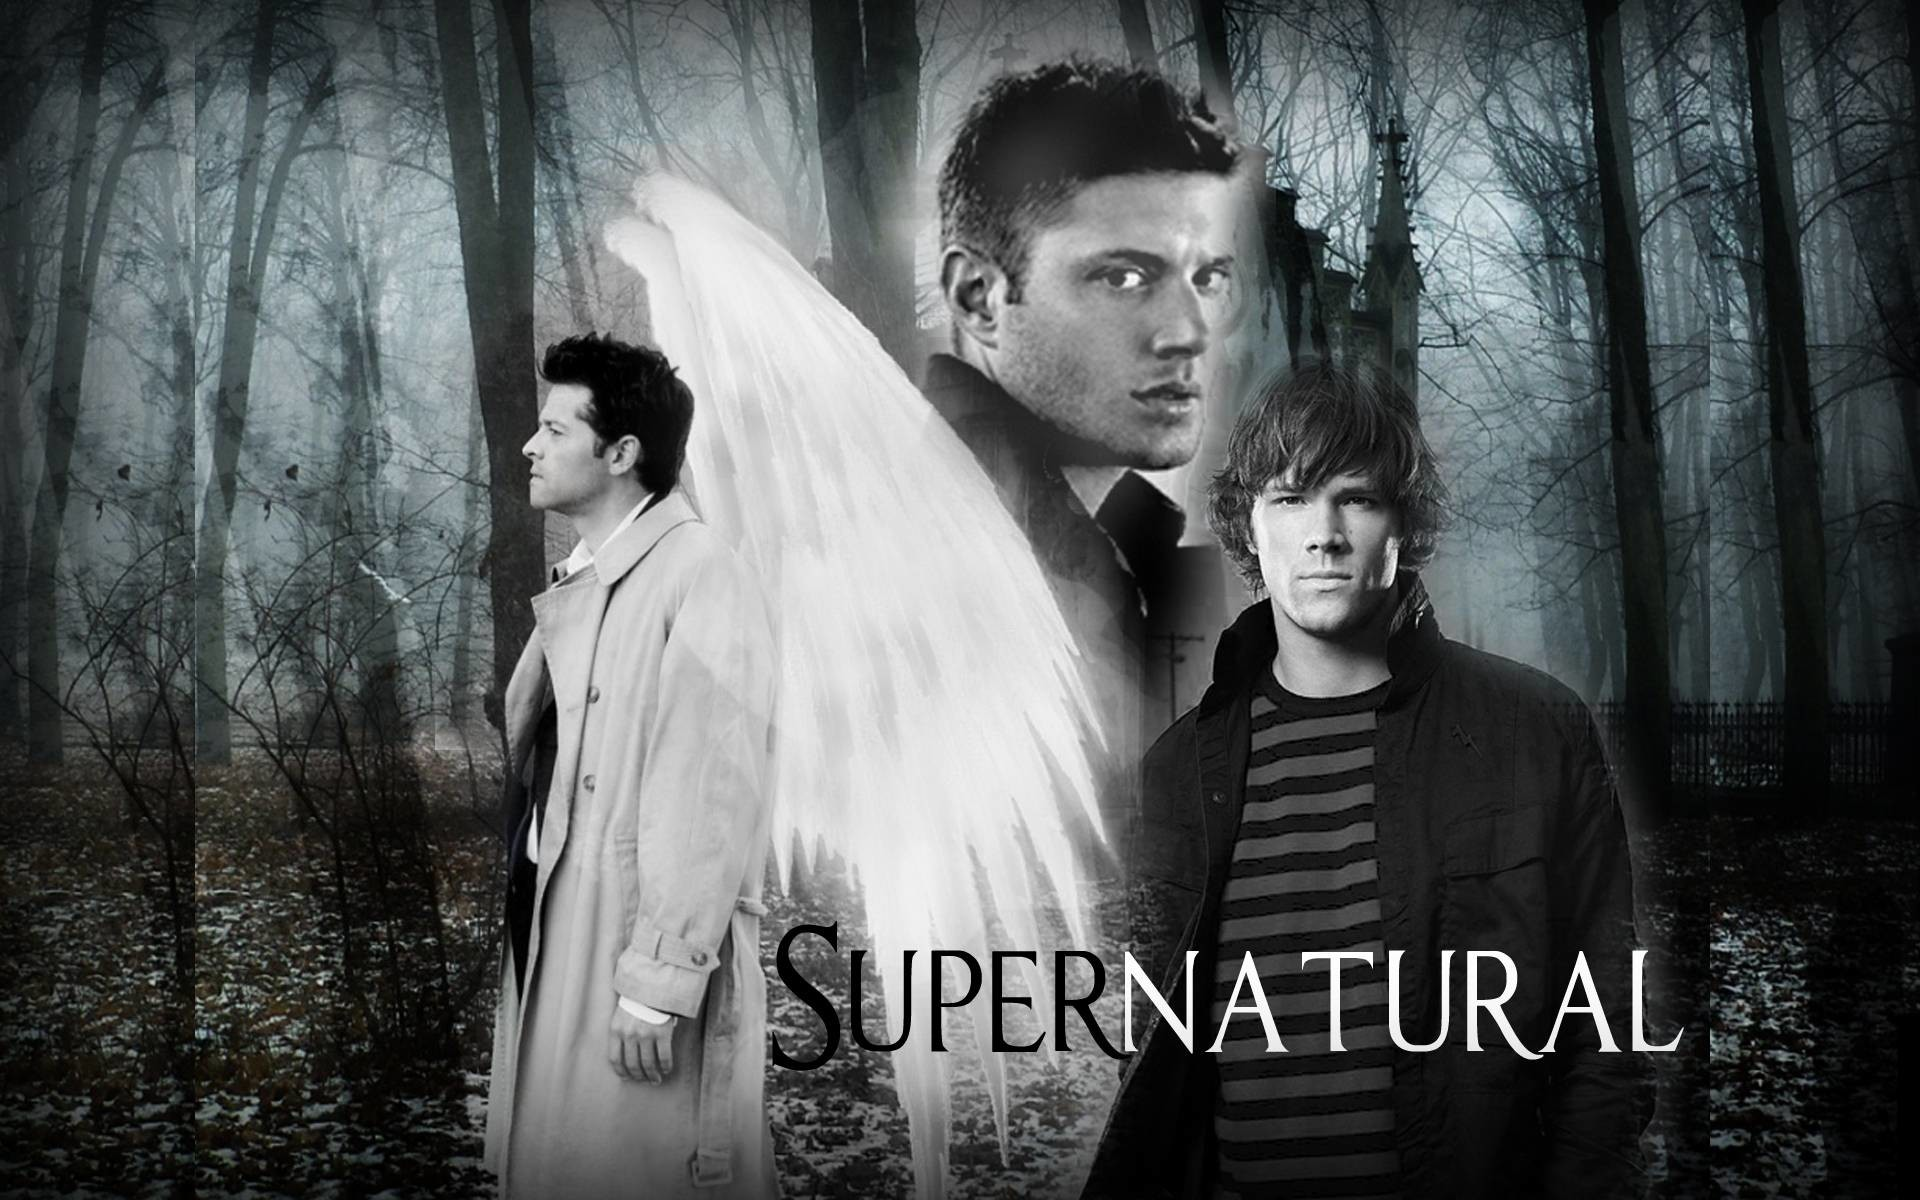 supernatural   supernatural wallpaper 1 – Supernatural/skillet Picture